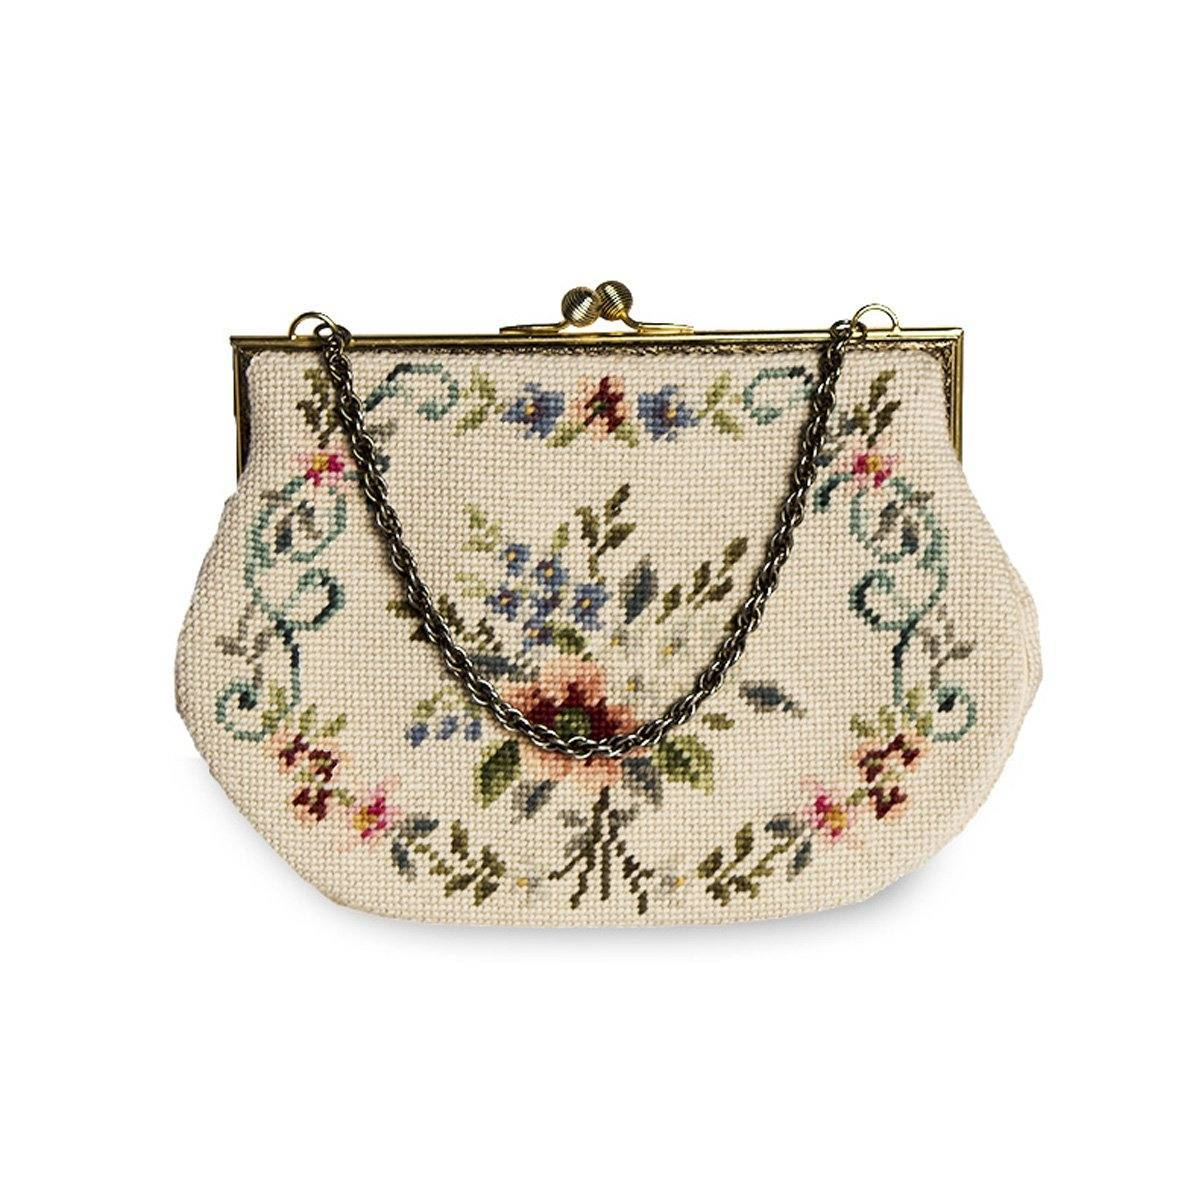 1960s Needlepoint Handbag, Floral Design